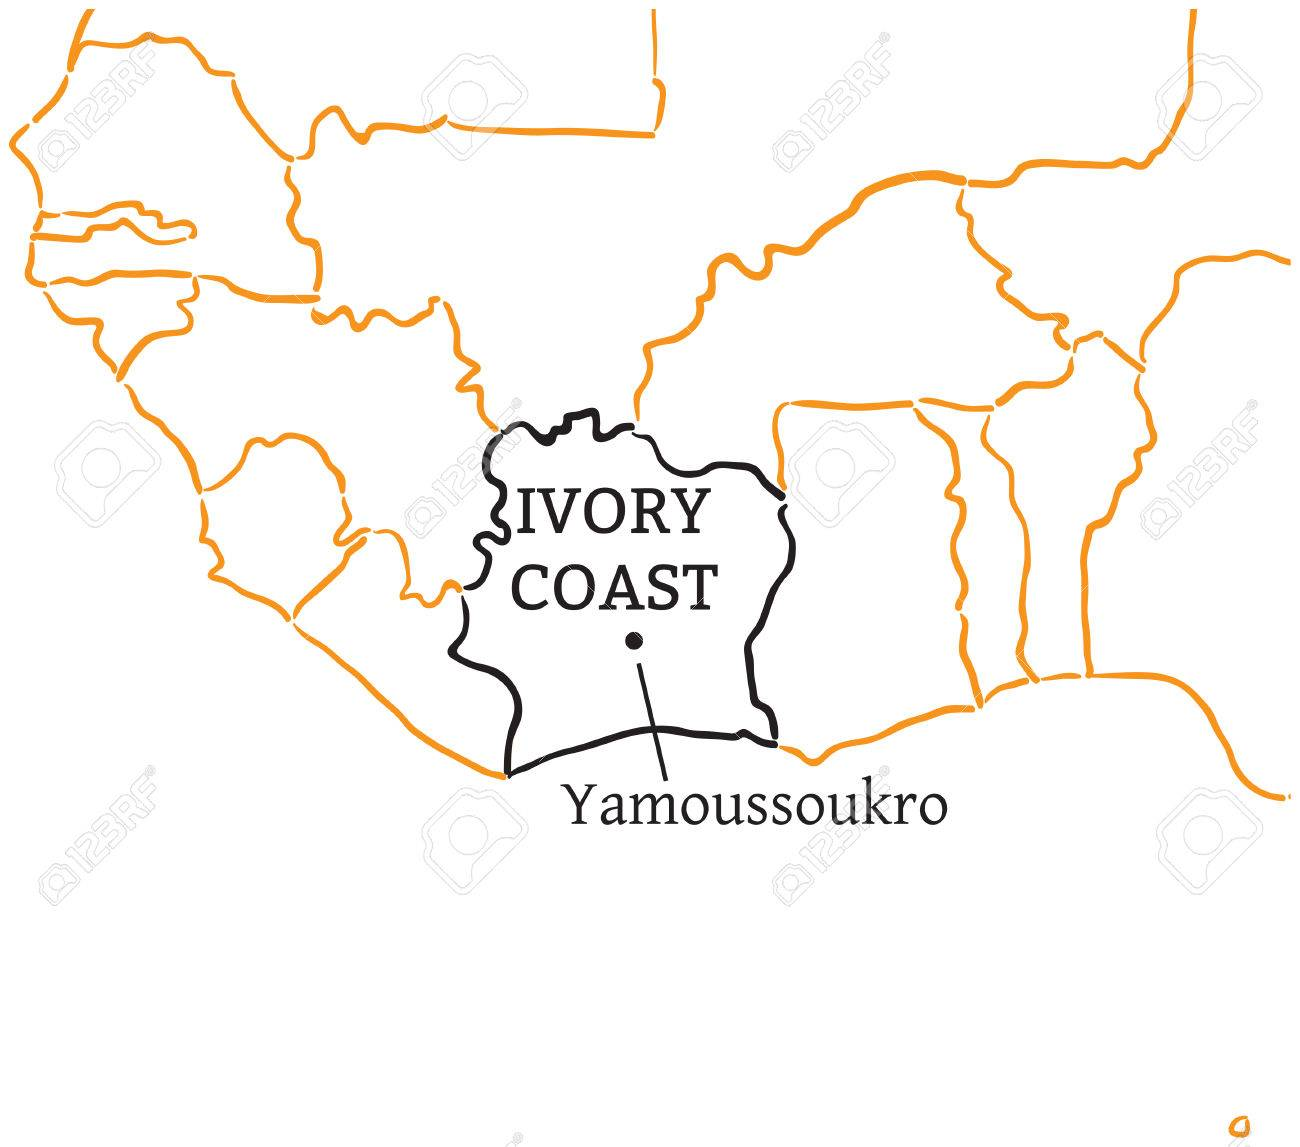 Picture of: Ivory Coast Country With Its Capital Yamoussoukro In Africa Hand Drawn Royalty Free Cliparts Vectors And Stock Illustration Image 58461157